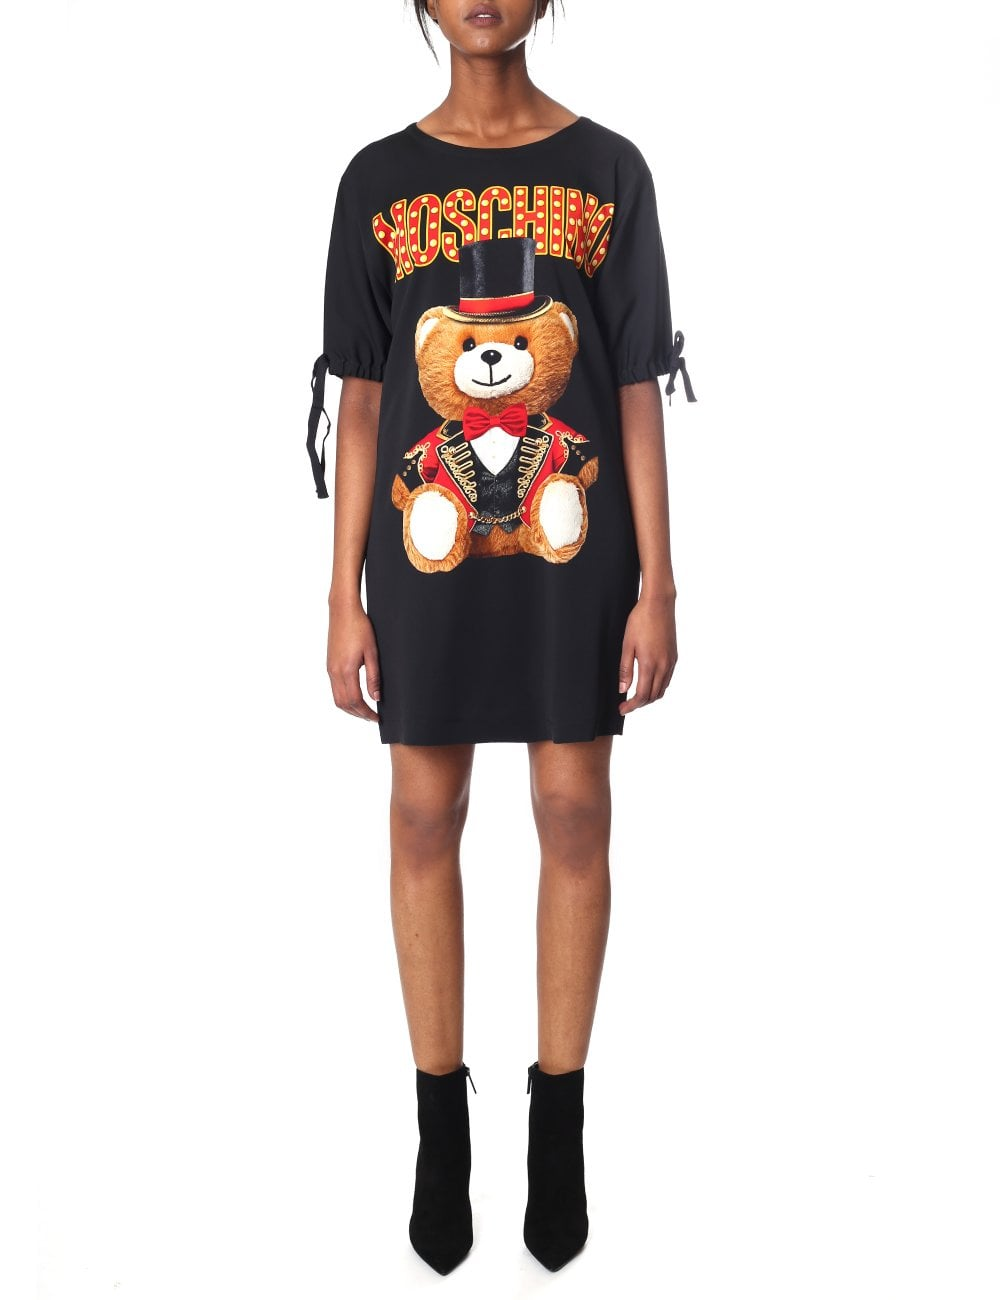 5c0cc9bb38f24 Moschino Couture Women s Bear With Hat Dress